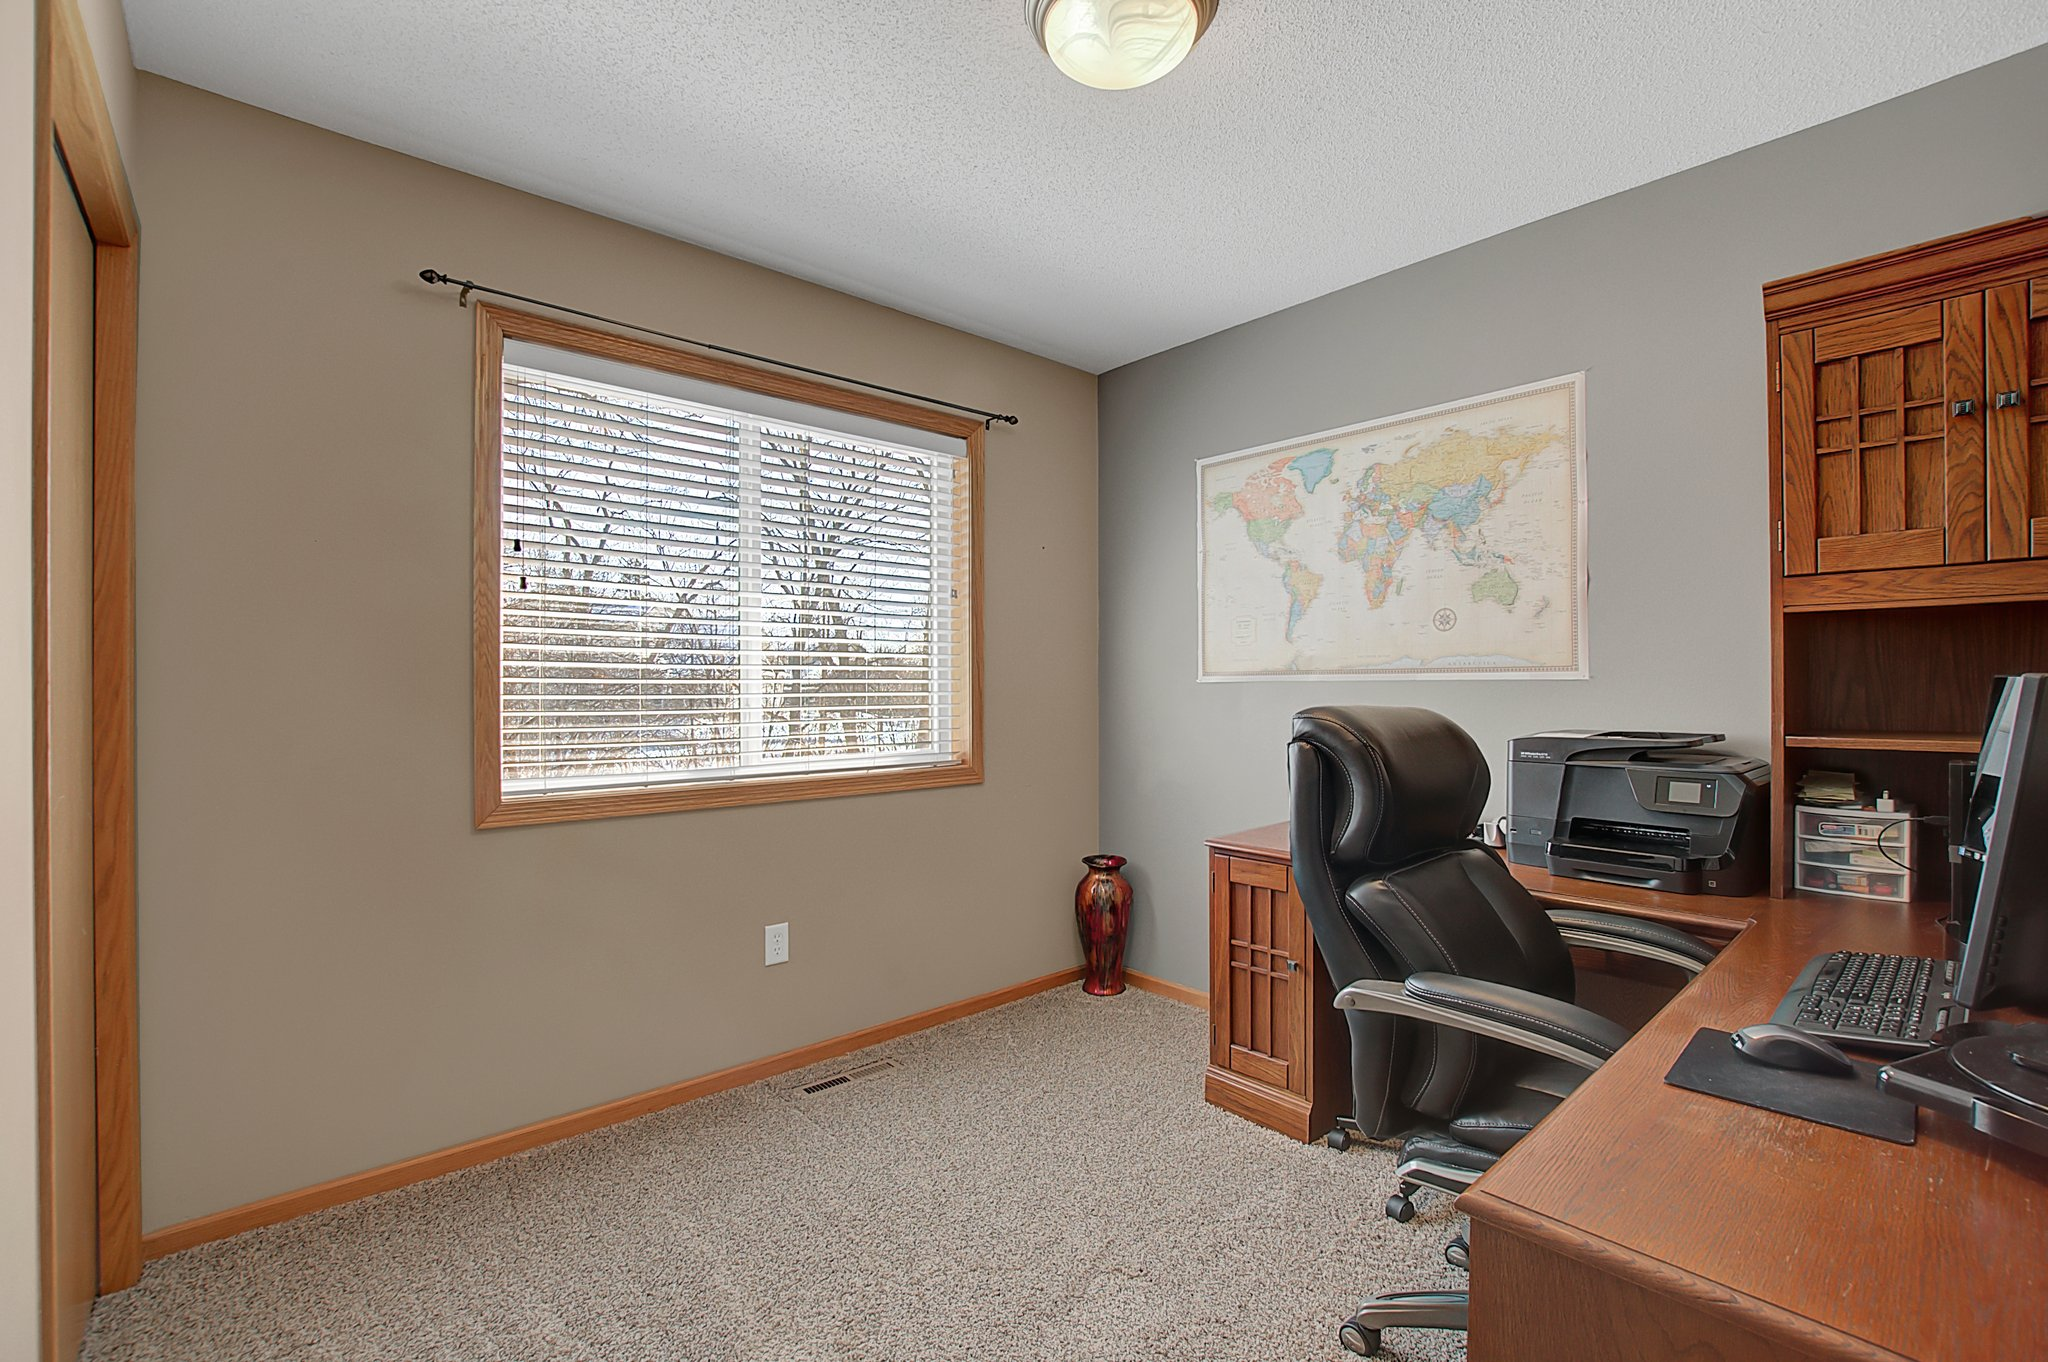 Bedroom 2 Upper, Used as an office right now.